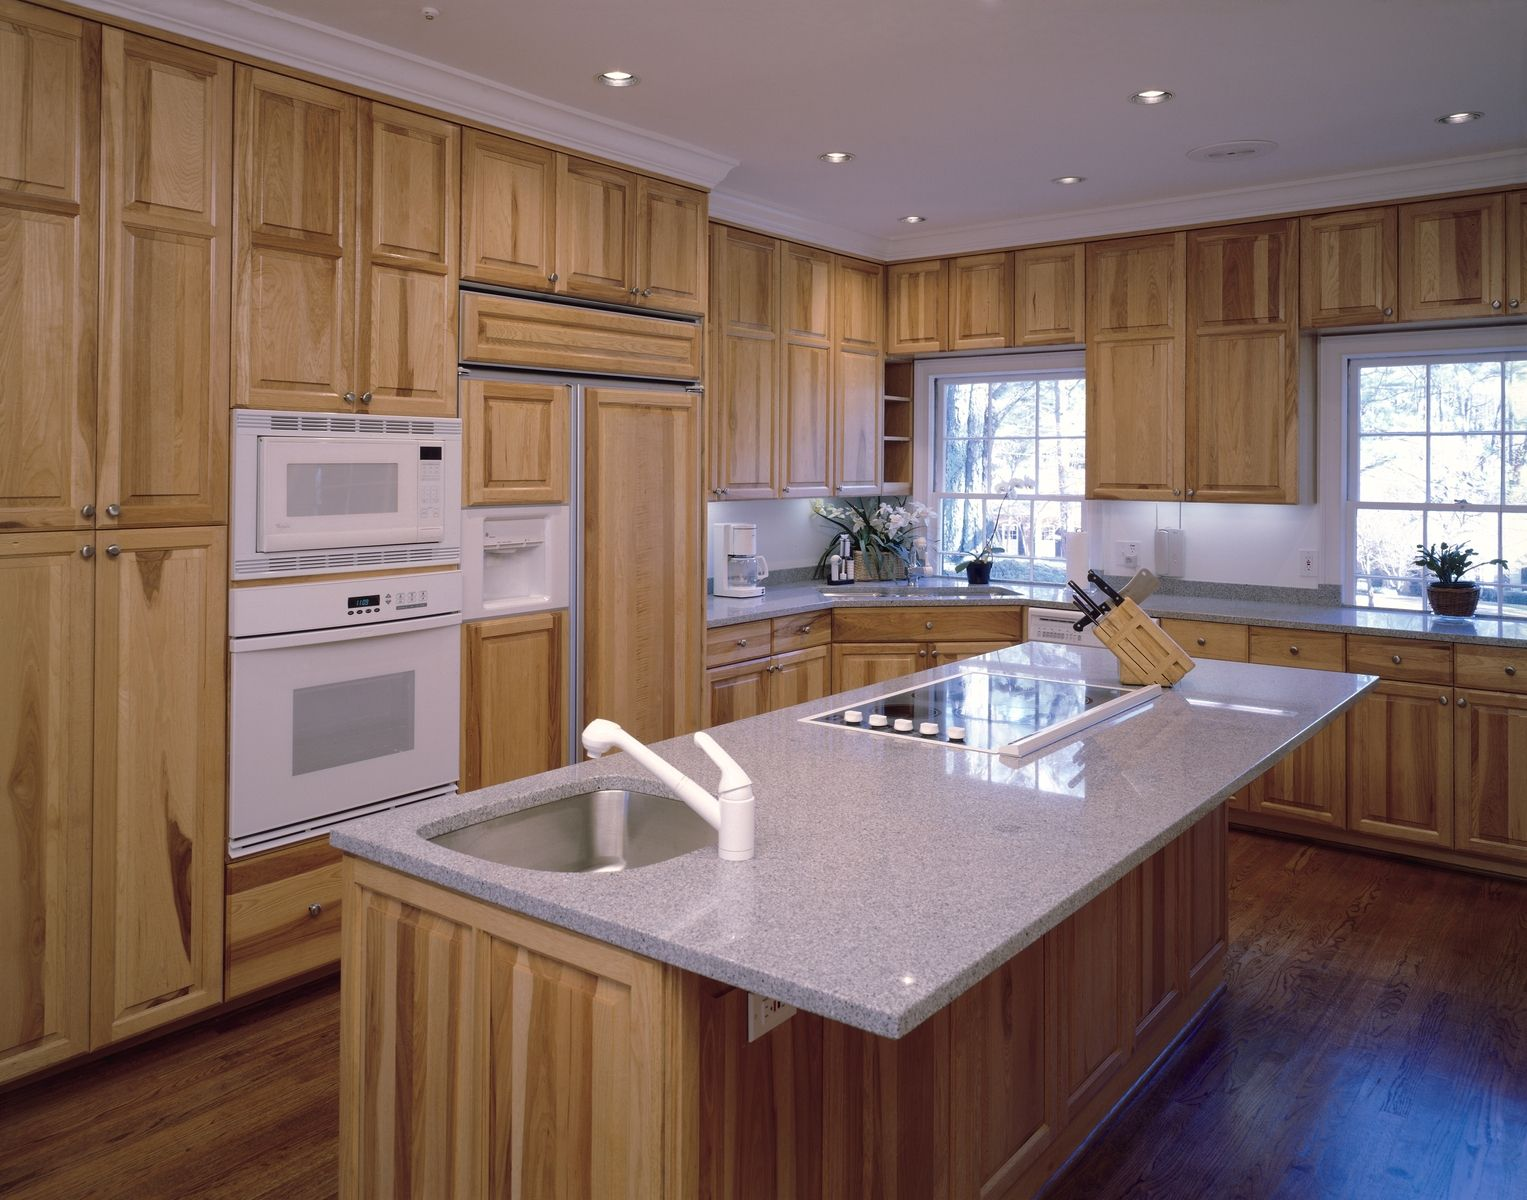 Hickory kitchen cabinets log home living pinterest for Hickory kitchen cabinets